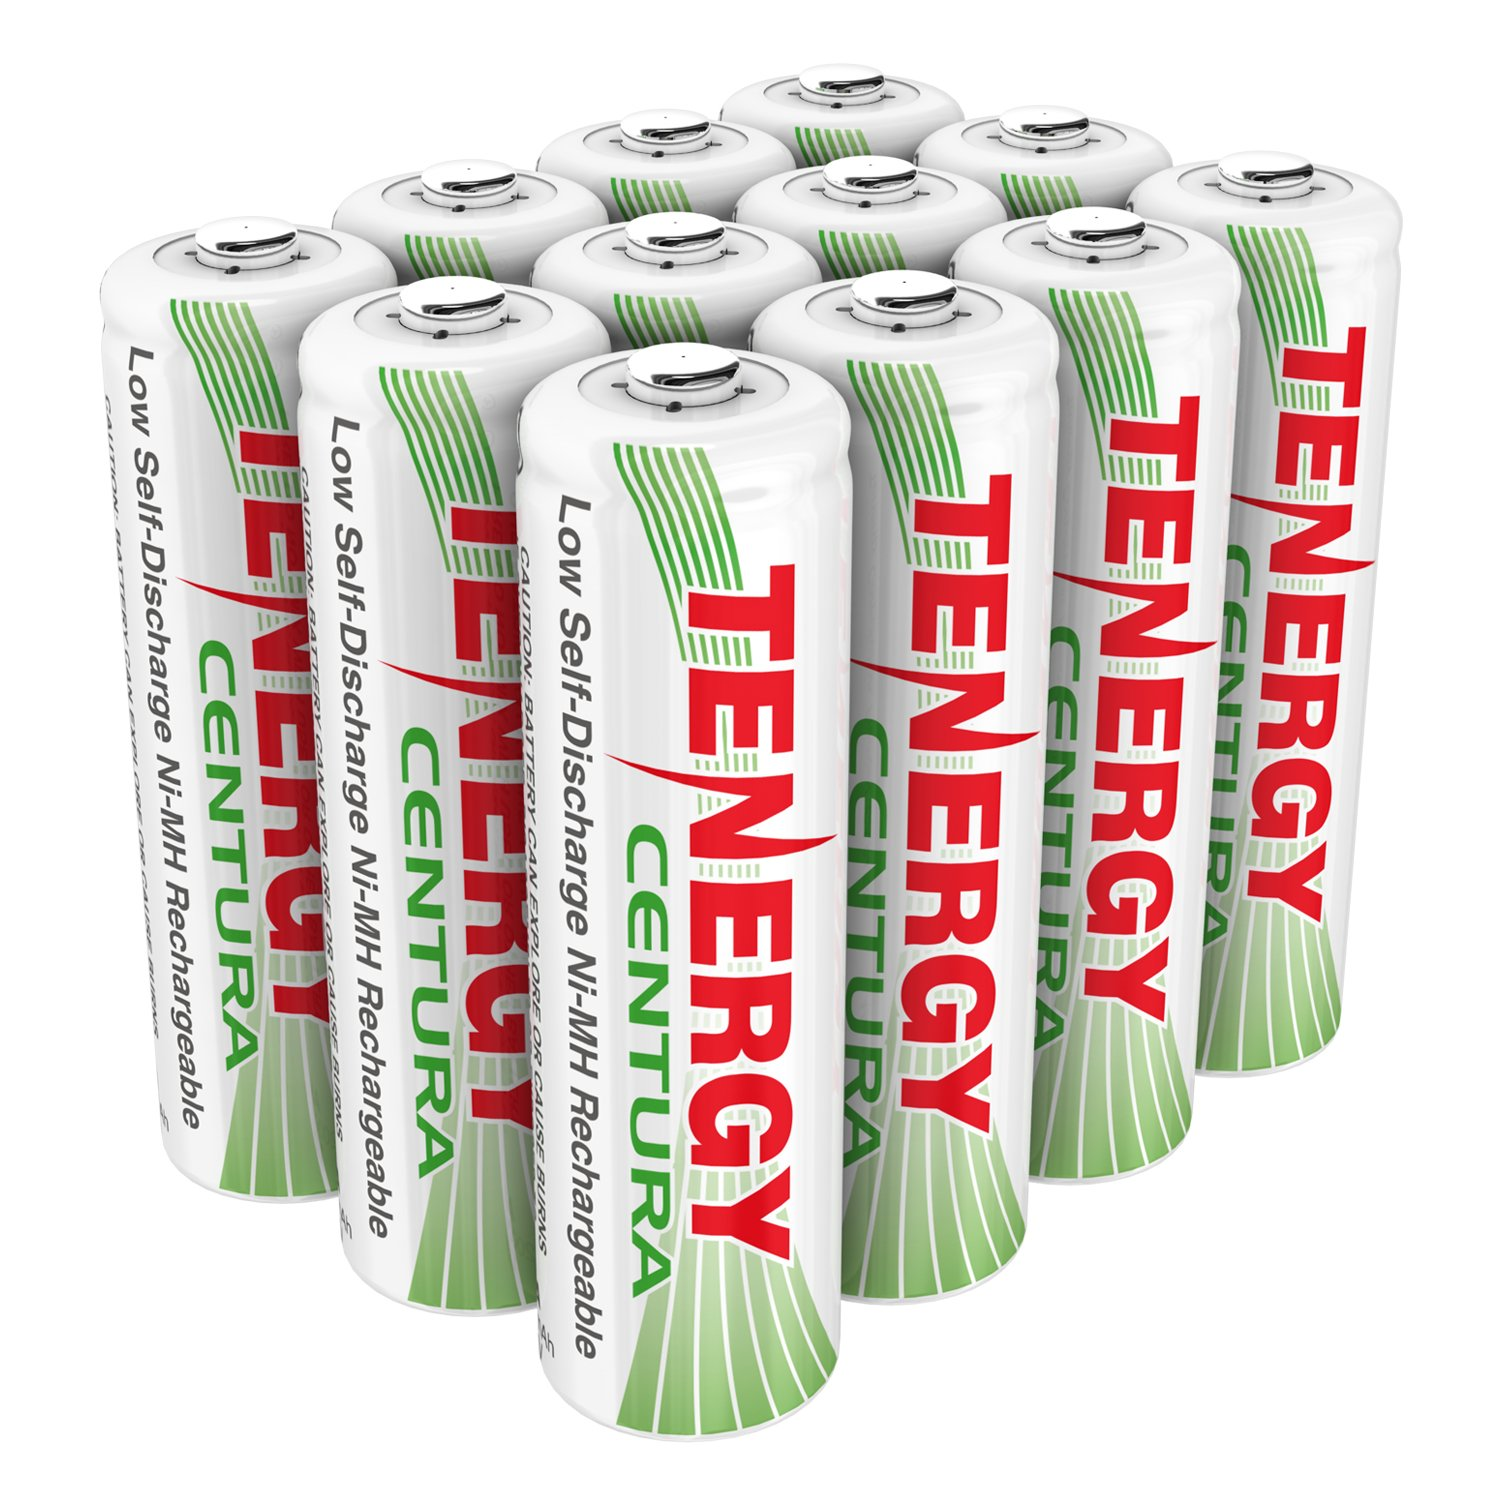 Tenergy AA Rechargeable NIMH Battery 2000mAh Pre-Charged Household Battery Low Self Discharge High Performance AA Battery Pack for Remote Controller/Toys/Flashlight/Mice (12 PCS)